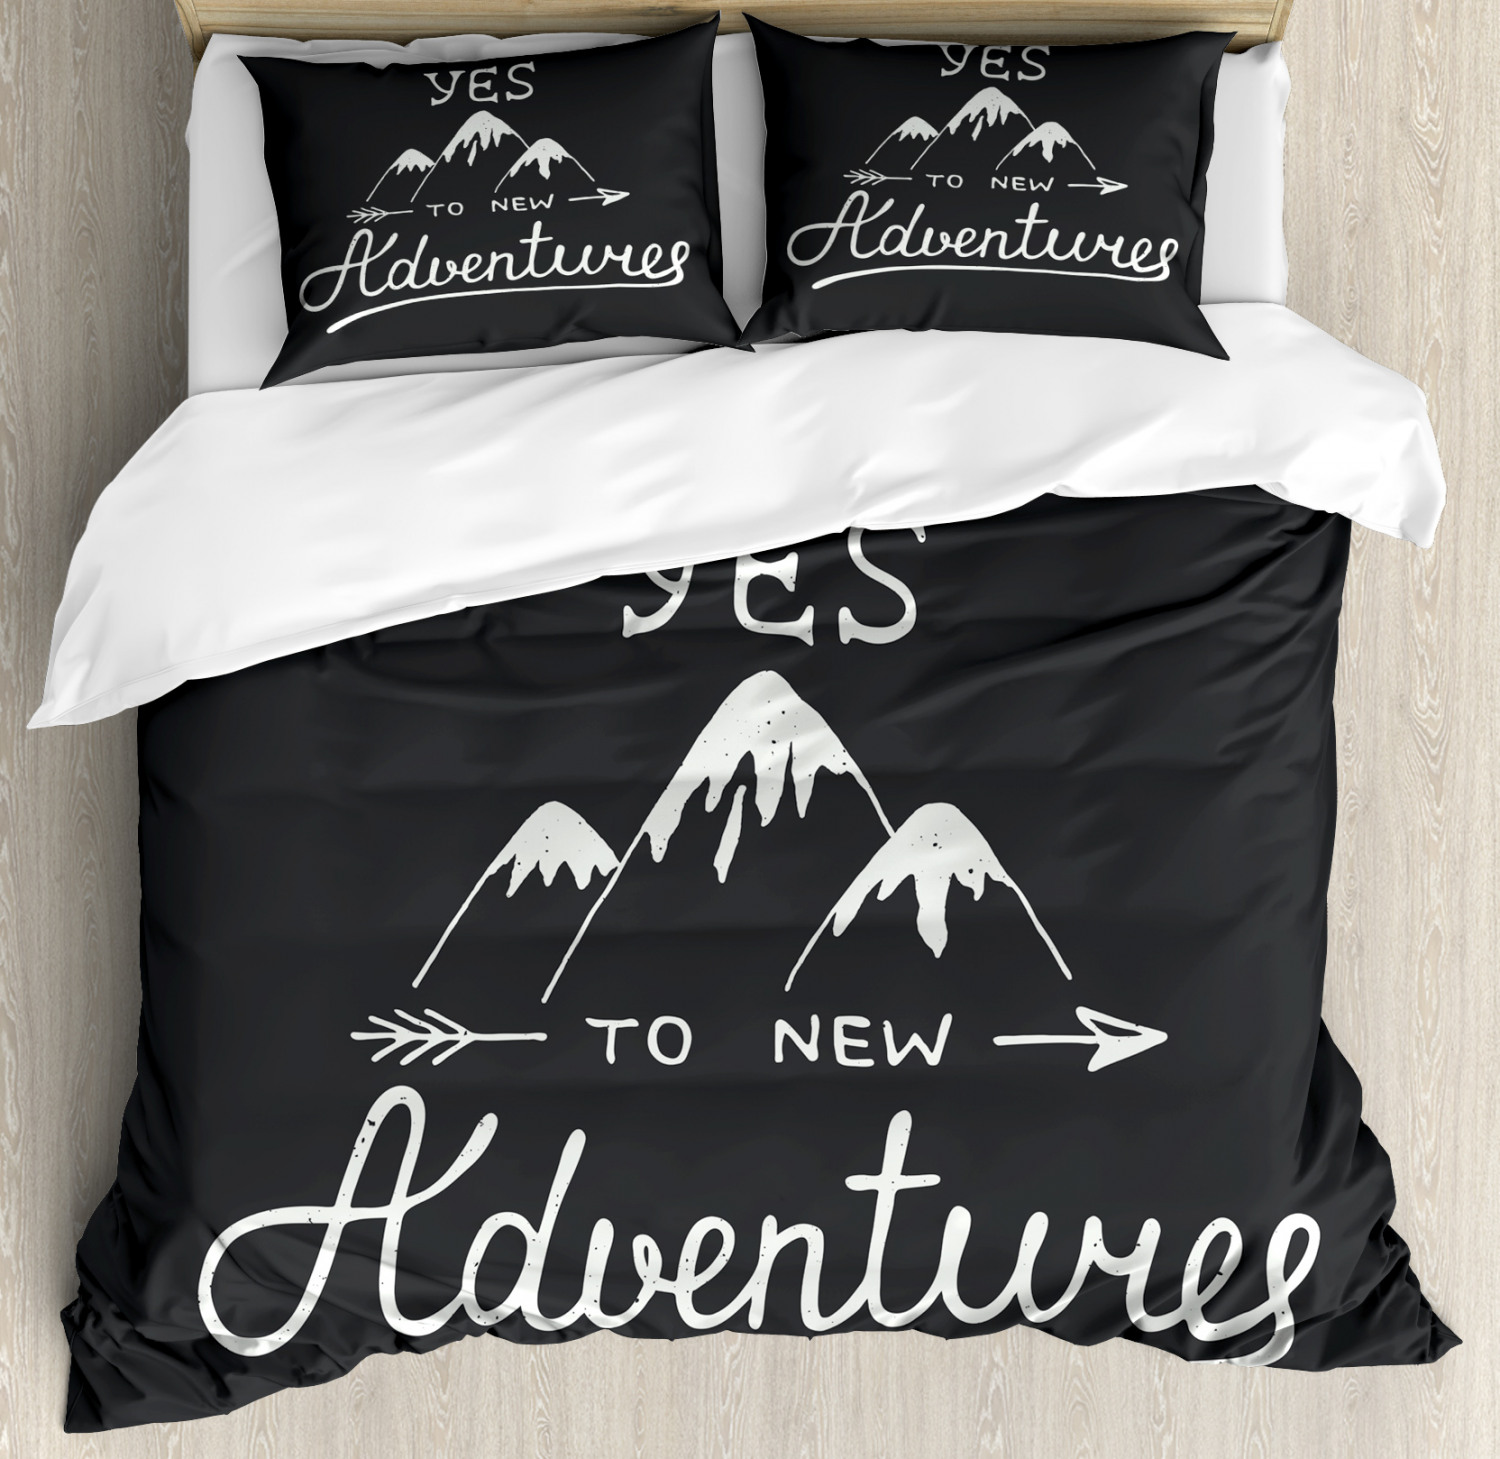 Adventure Duvet Cover Set with Pillow Shams Quote and Mountains Print